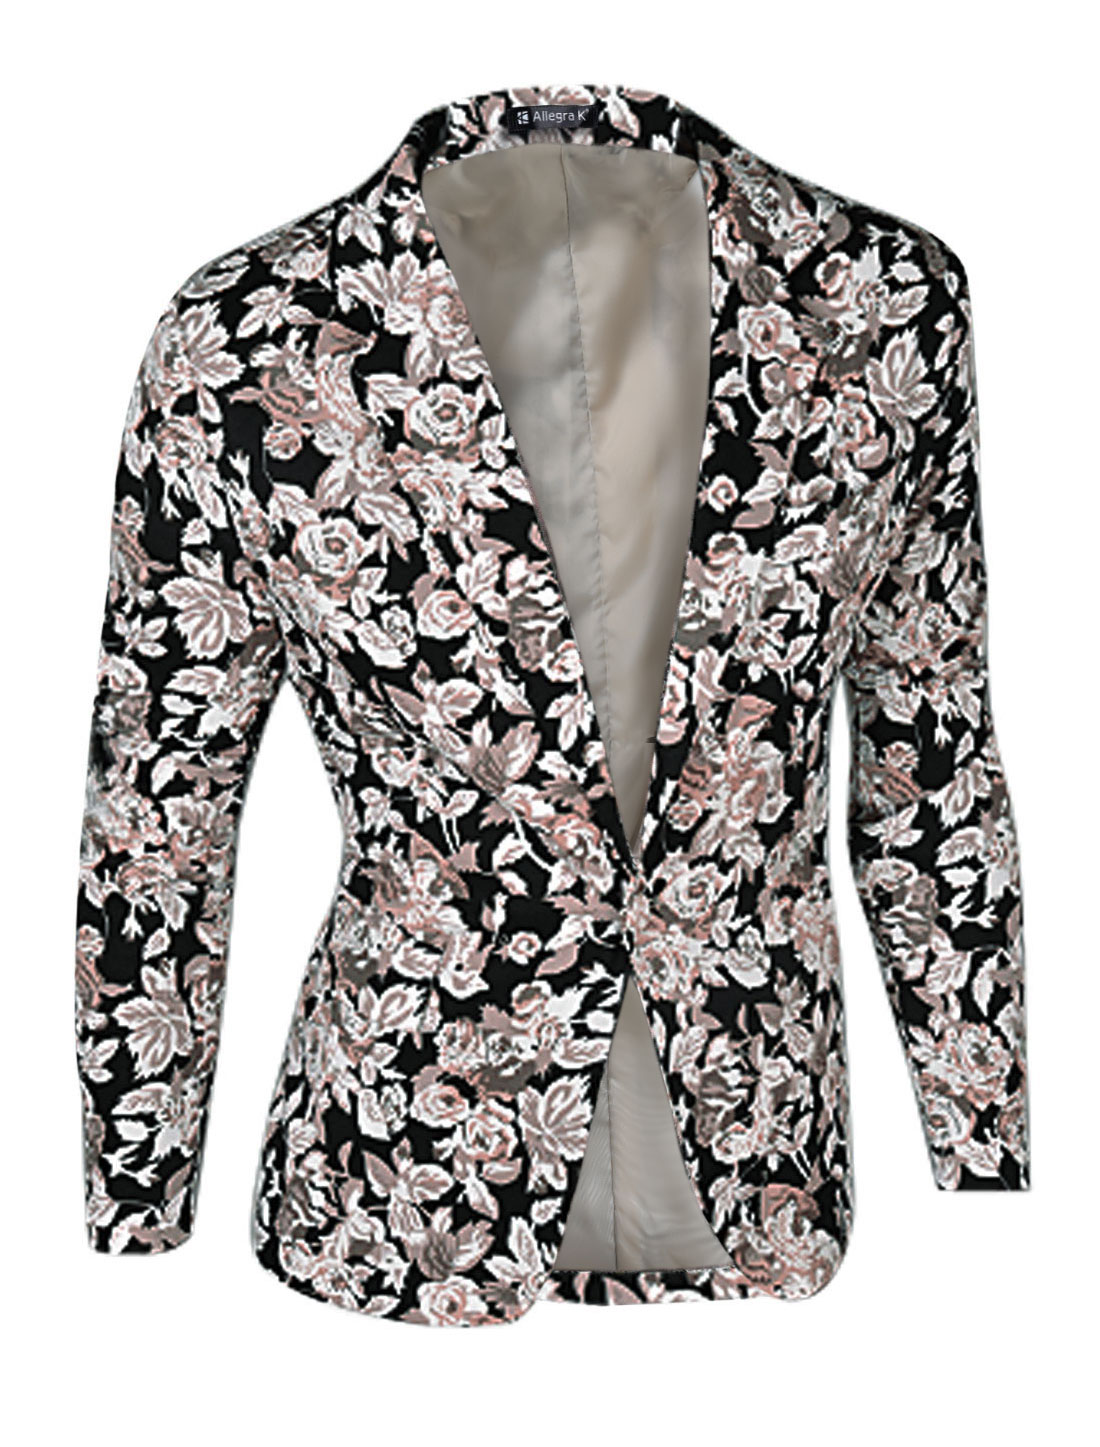 Man Floral Prints Notch Lapel Front Pockets Split Back Blazer Jacket Black M